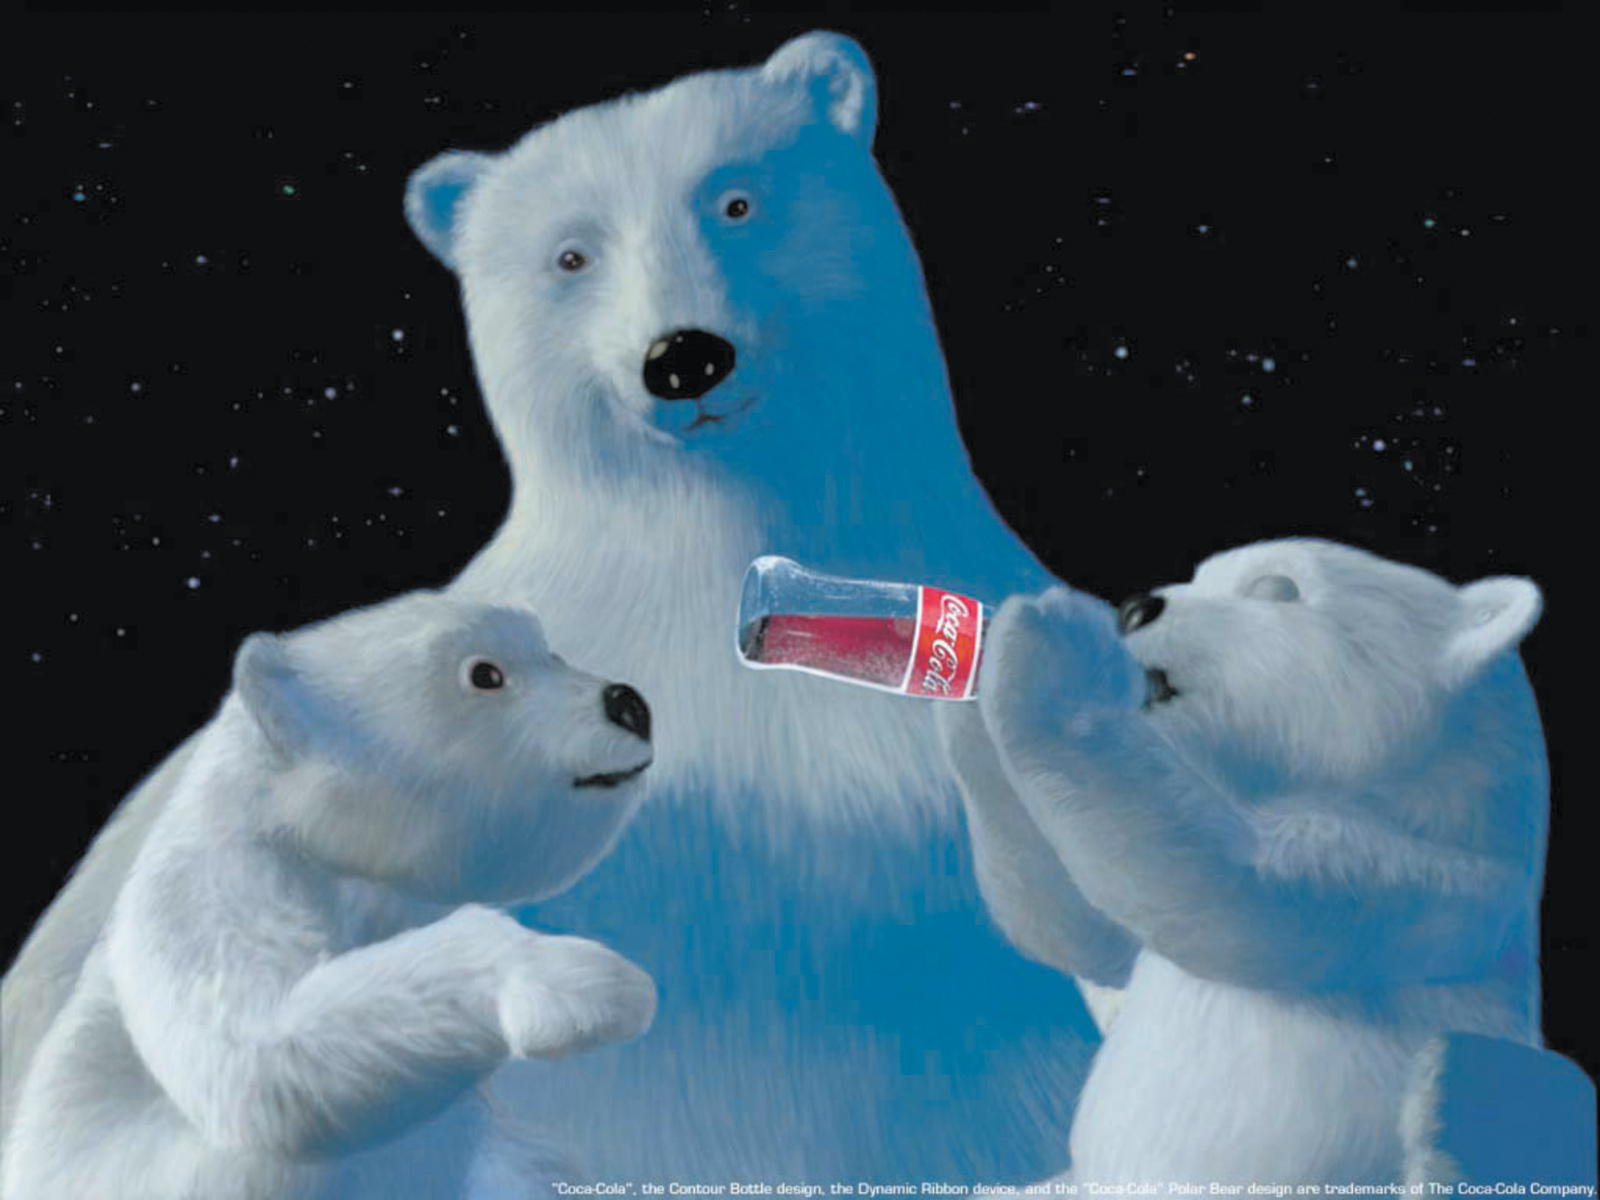 One of Coke's polar bear advertisements, the first of which appeared in 1922. 'As the real-life animal has become associated with global warming, melting glaciers, and drowning polar bear cubs,' Natalie Angier writes, 'Coca-Cola has modified its message to present itself as the bear's best friend and protector.'